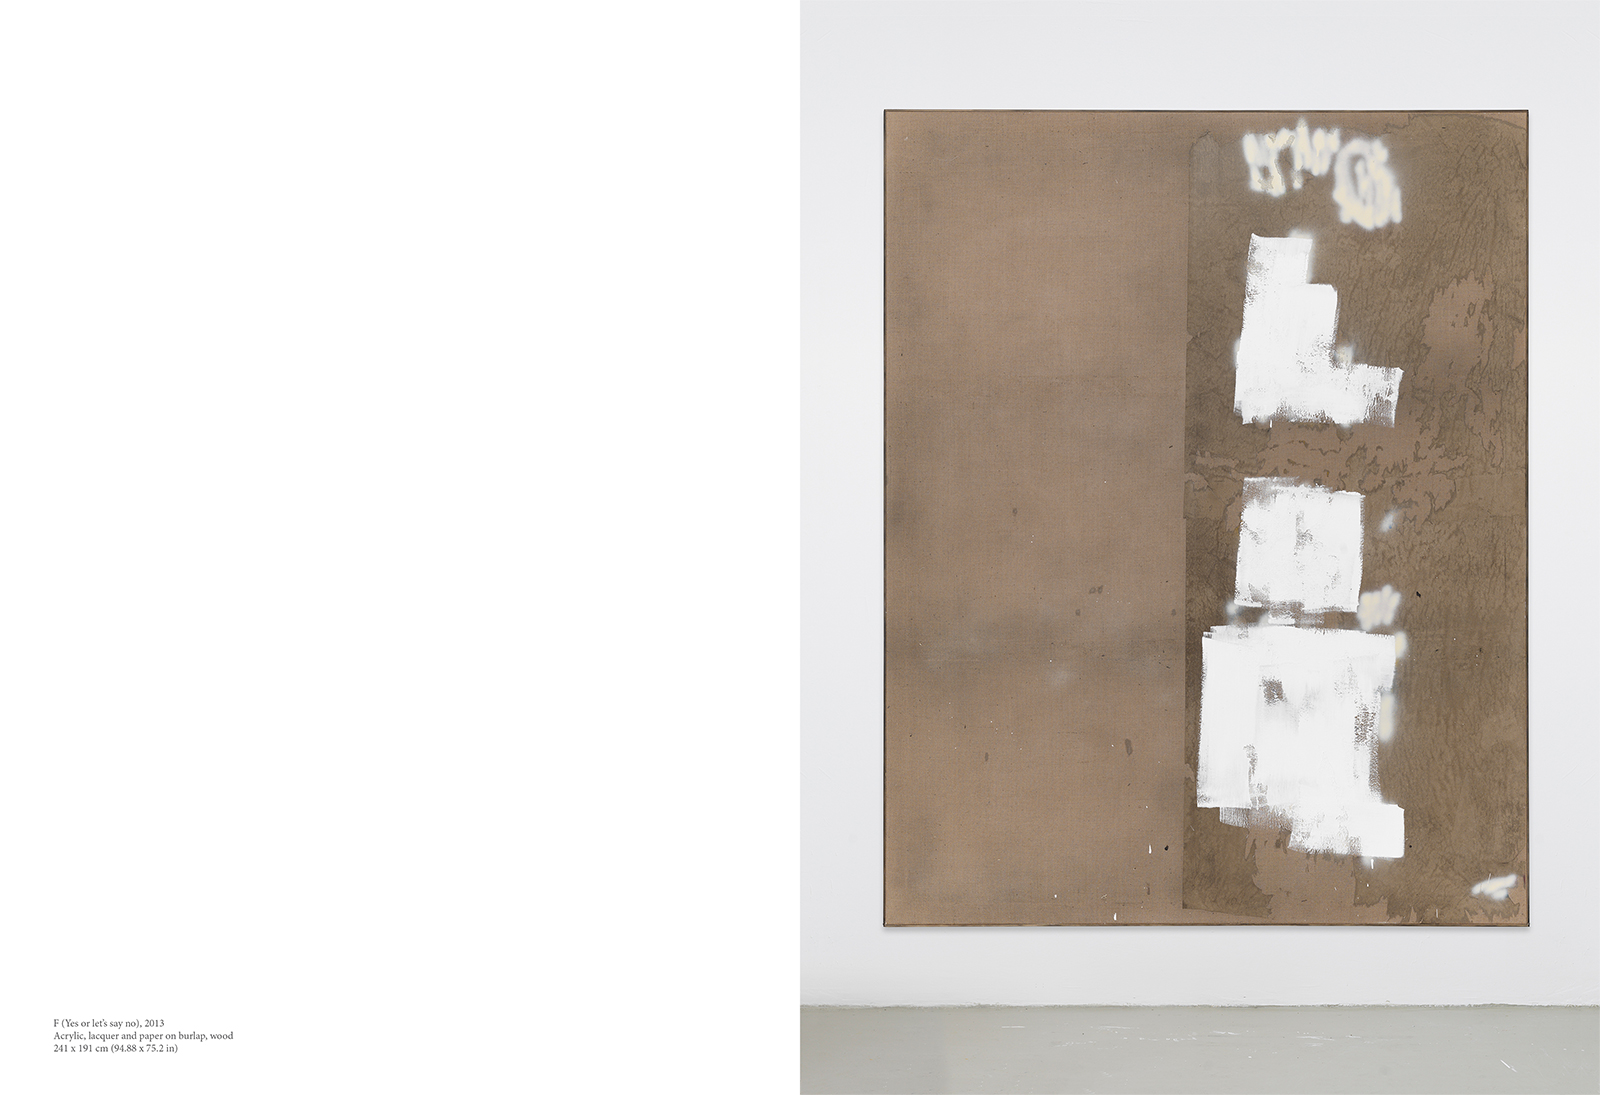 David Ostrowski, F (Yes or let's say no), 2013, Acrylic, lacquer and paper on burlap, wood, 241 x 191 cm